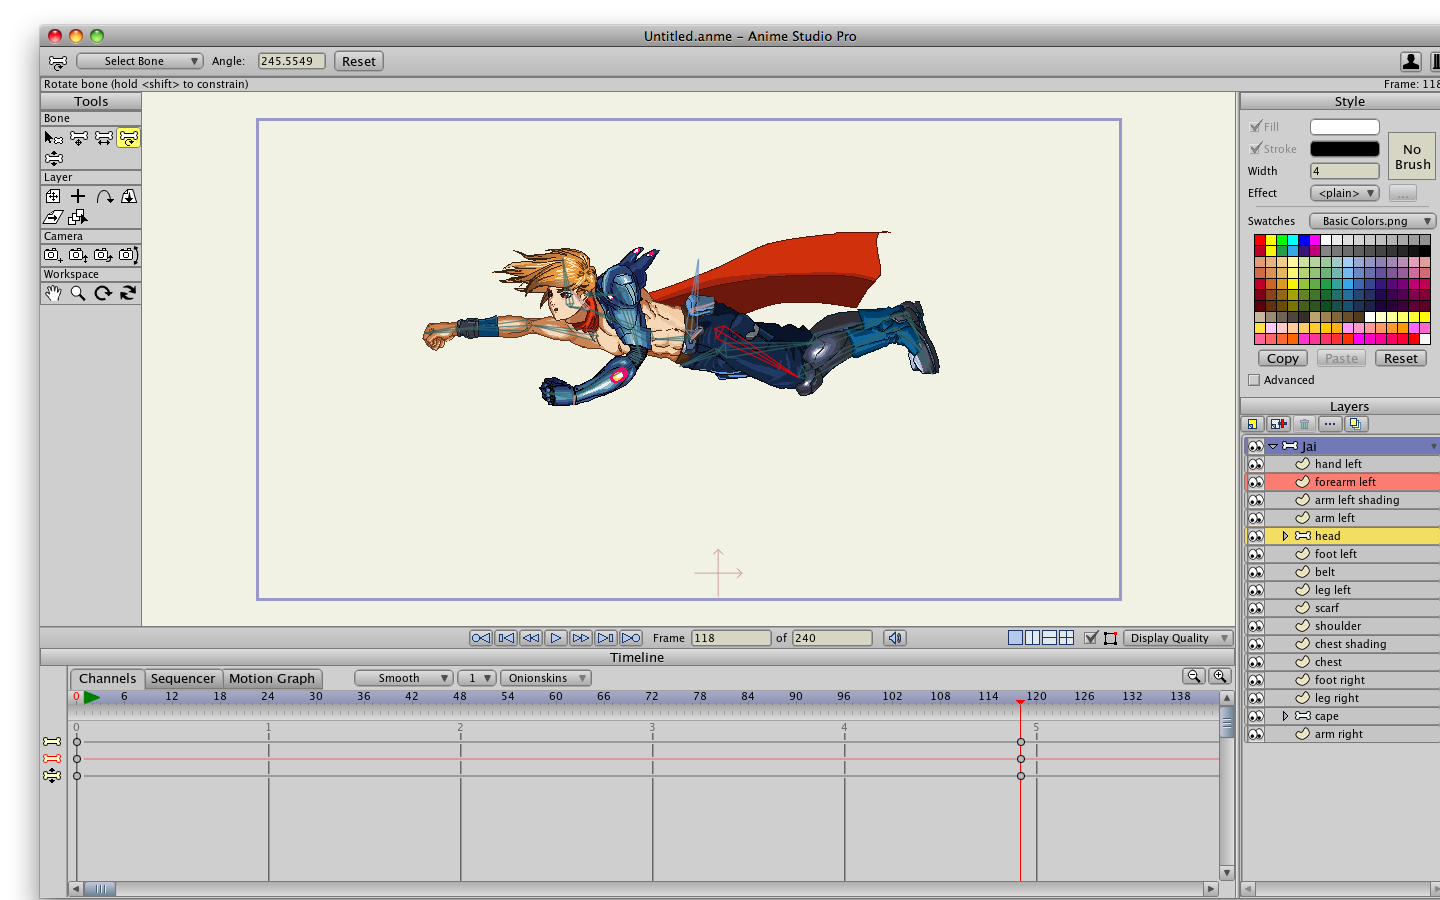 NYCC 2012: Animation Made Easy (Anime Studio Review)